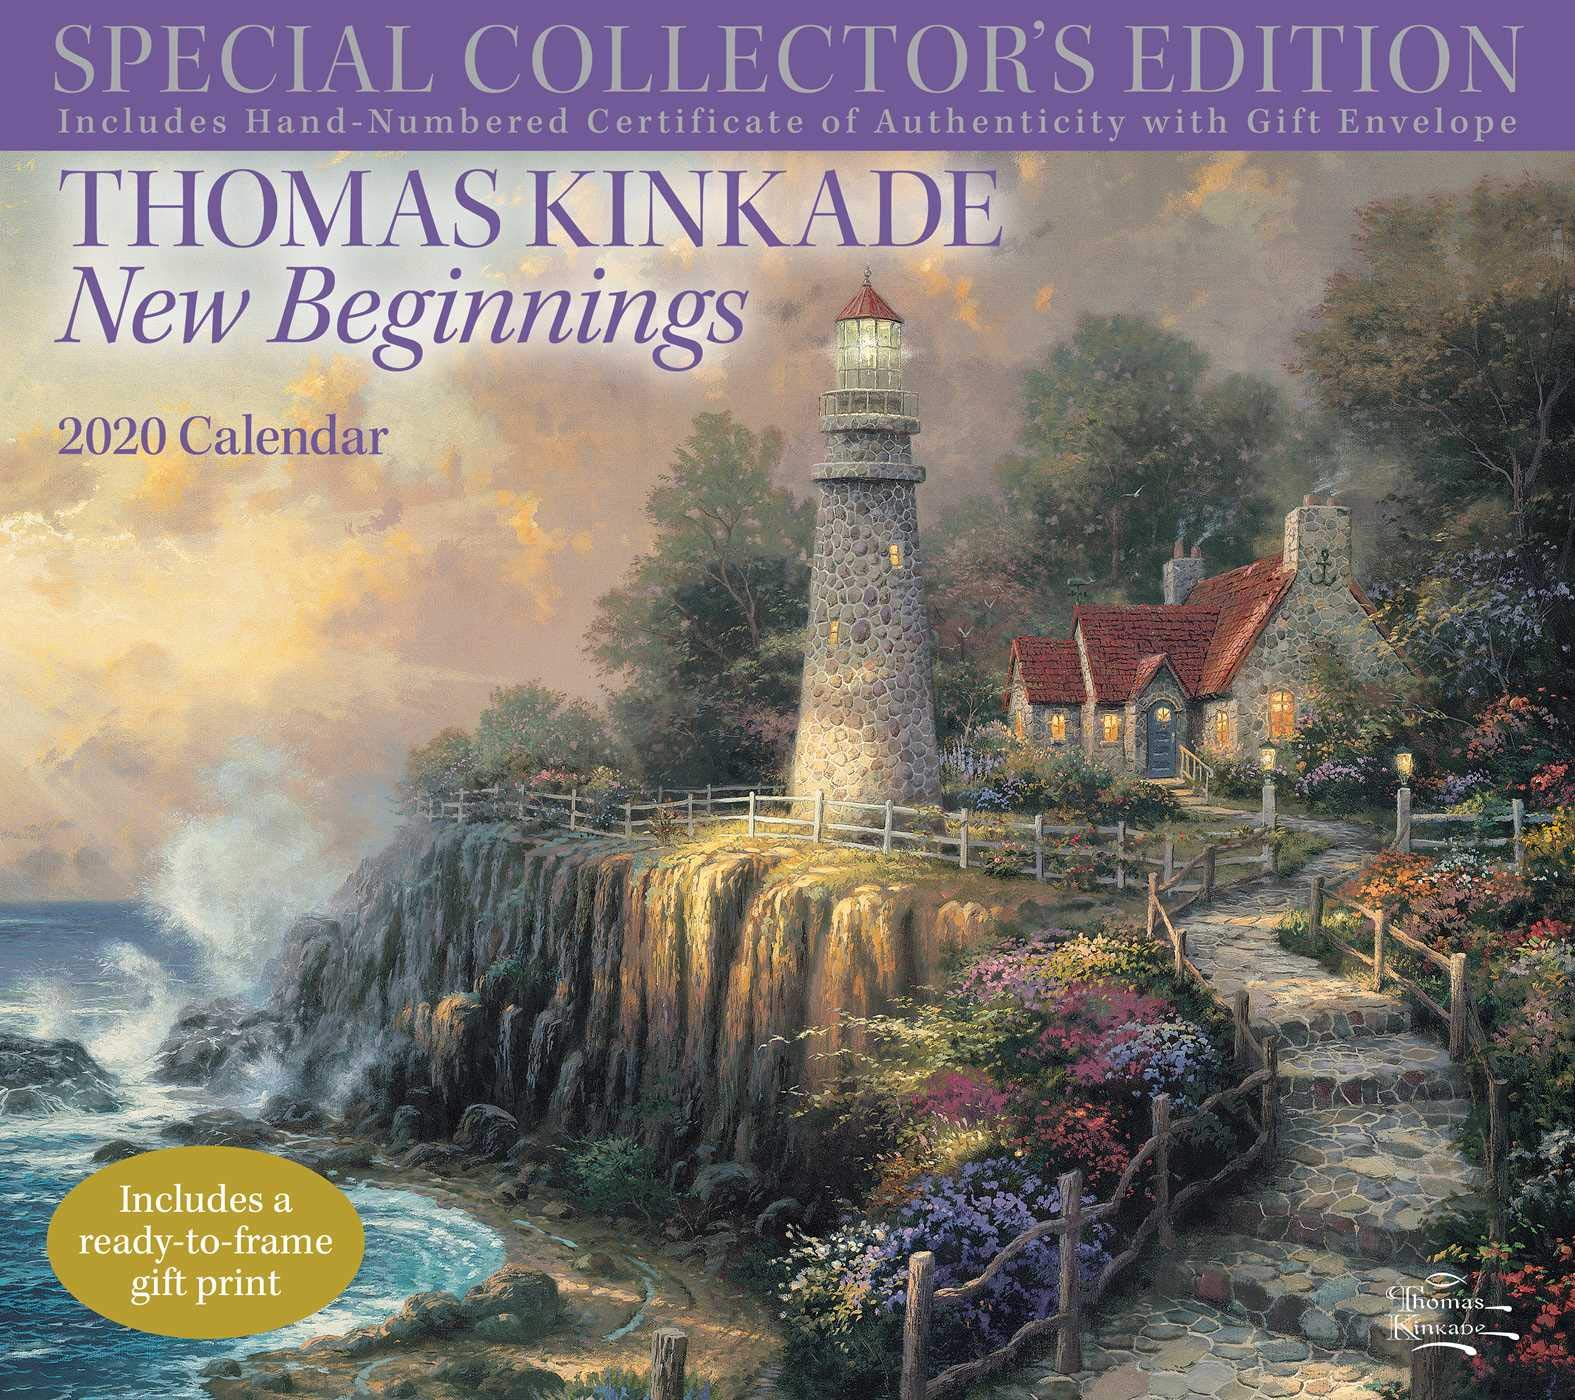 New Edition Concert Schedule 2020 Amazon.com: Thomas Kinkade Special Collector's Edition 2020 Deluxe